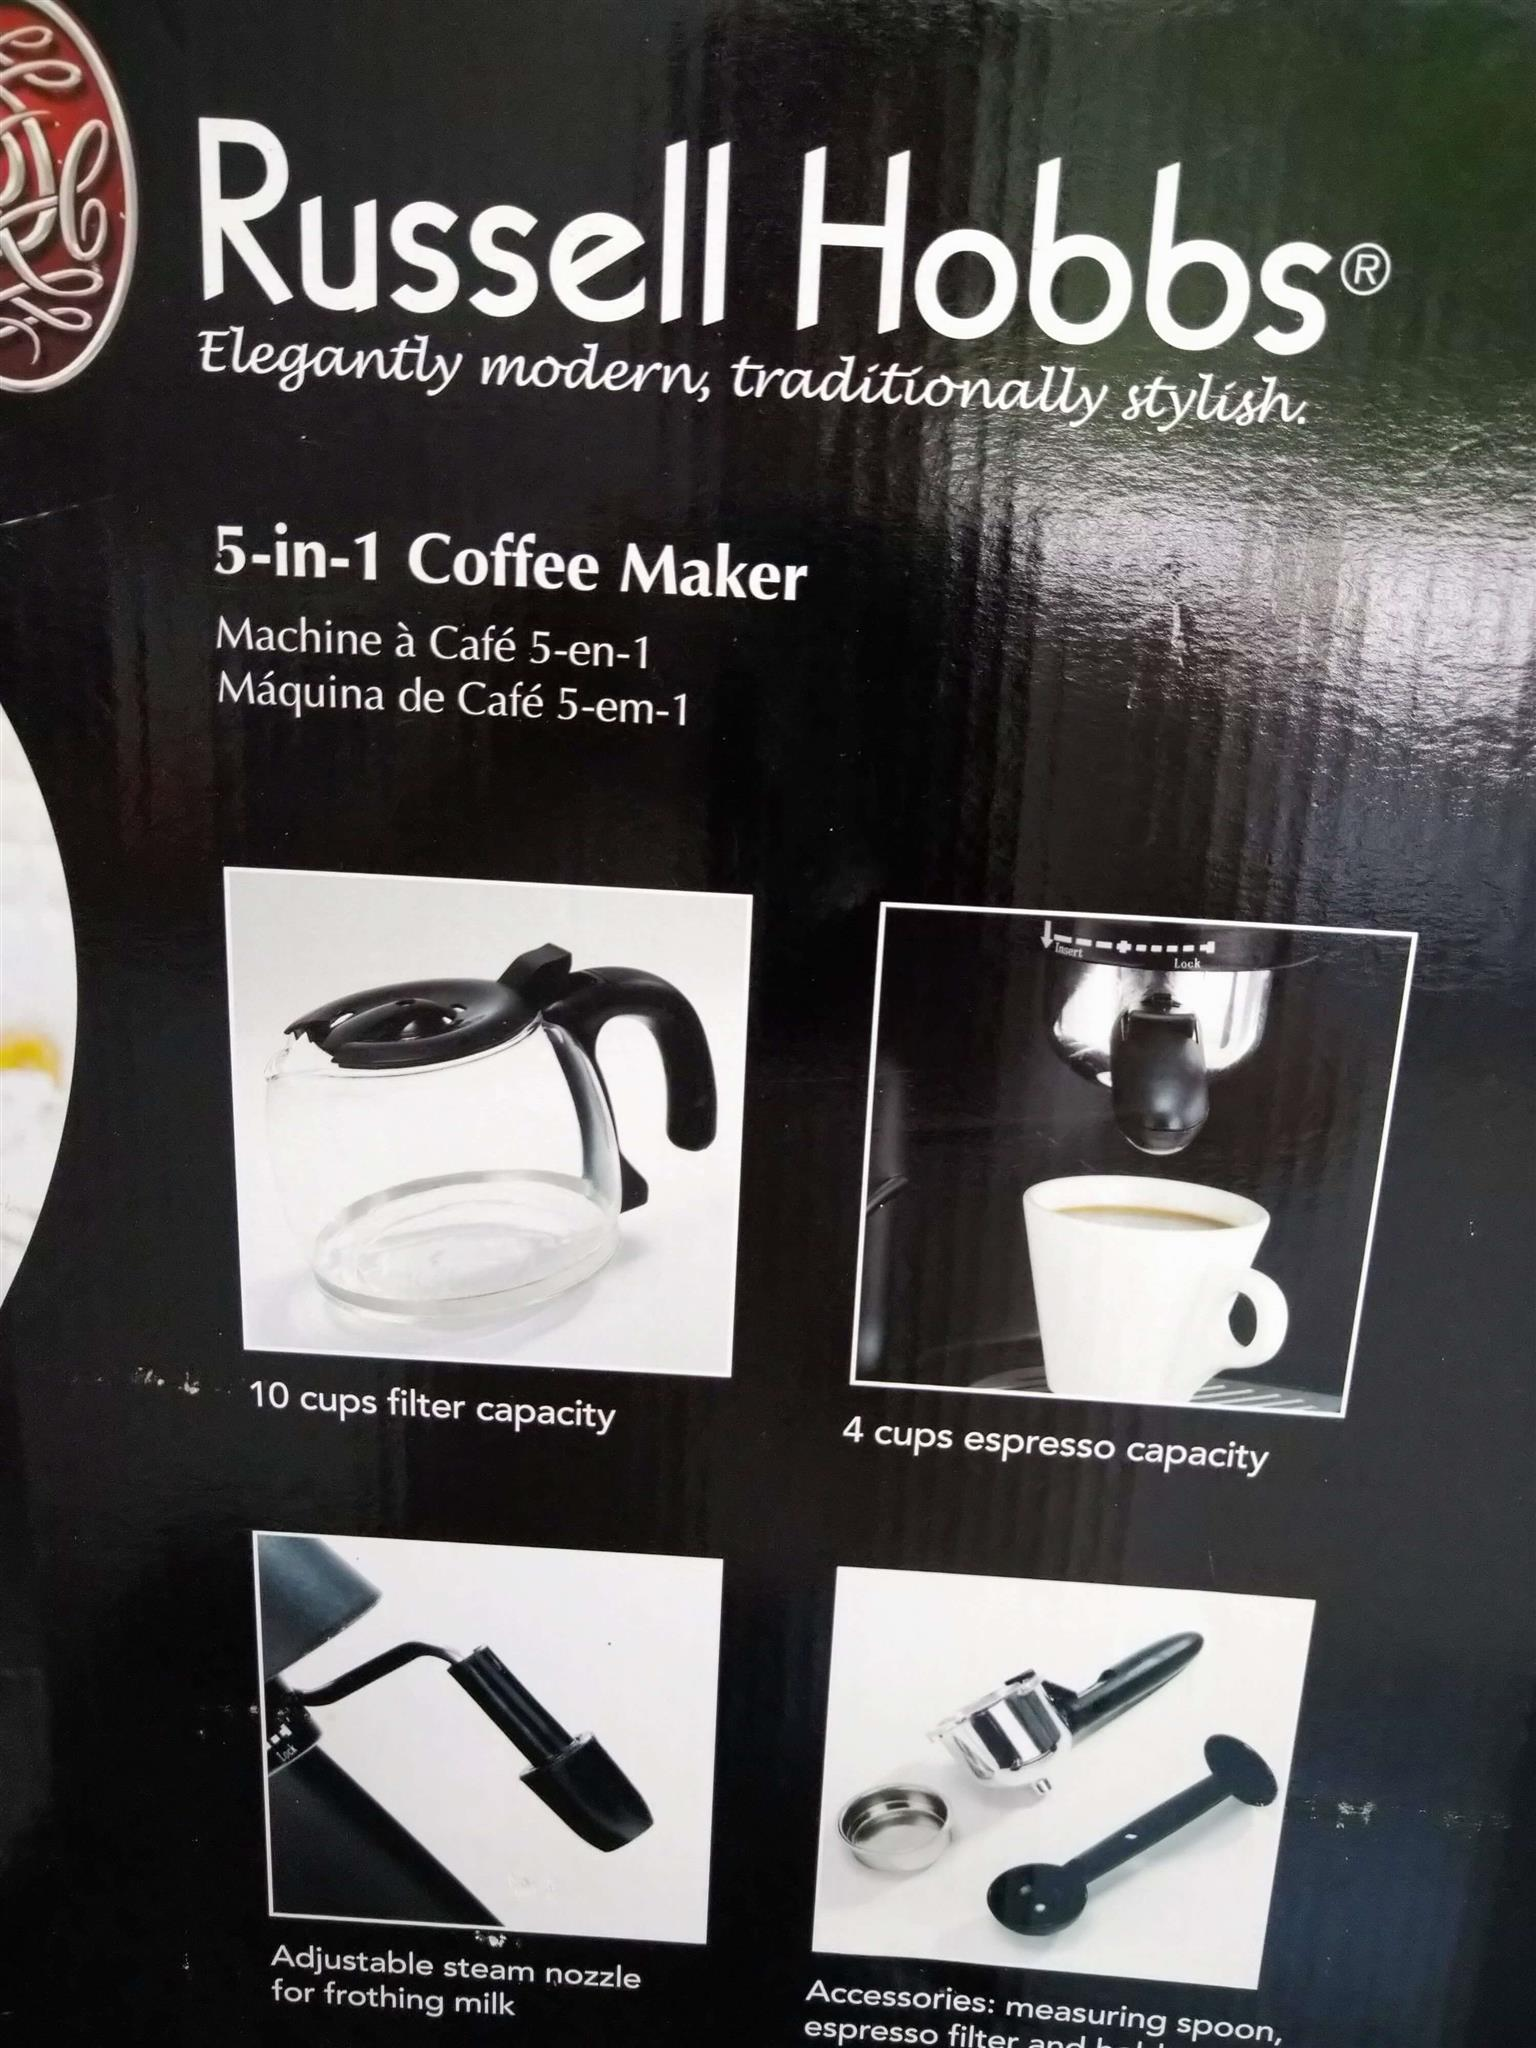 5-in-1 Russell Hobbs Coffee Machine - Wake up to the smell of coffee percolating with this multi-functional Coffee Dream Machine.